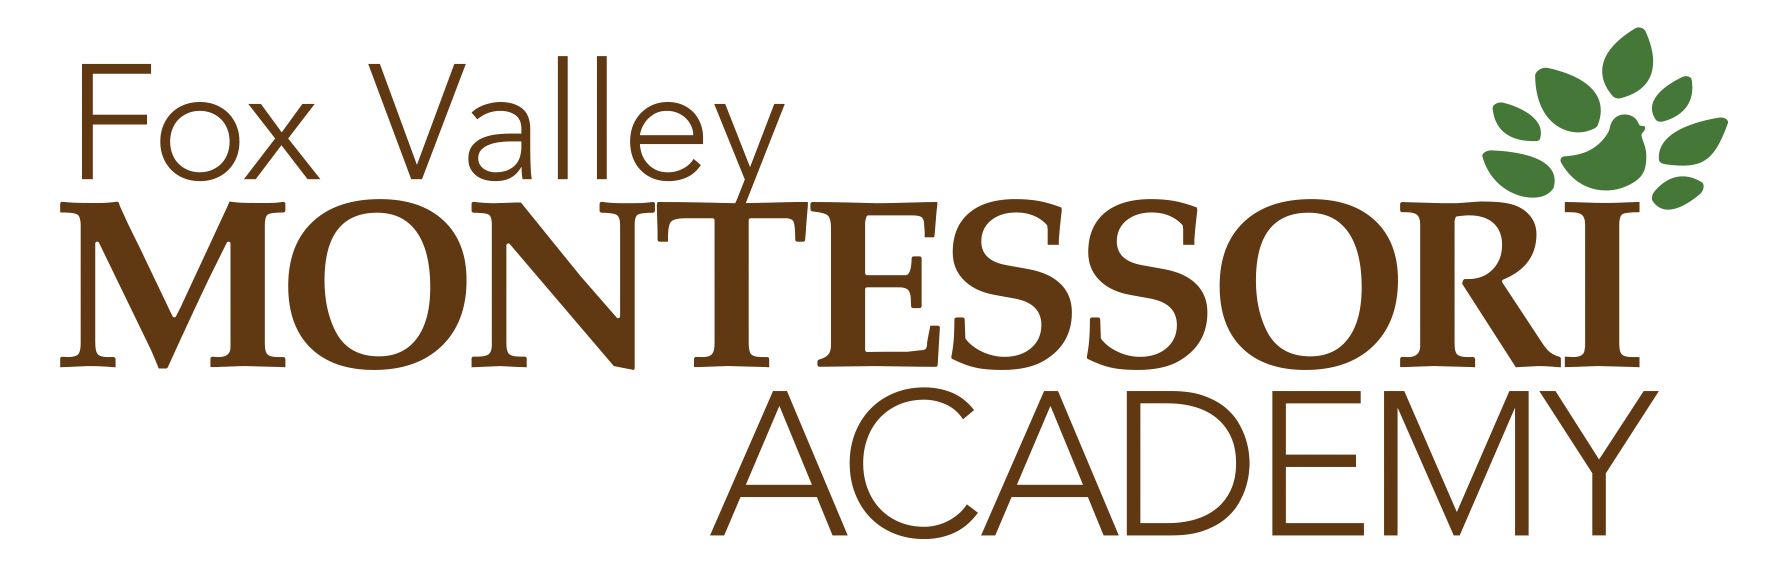 Fox Valley Montessori Academy